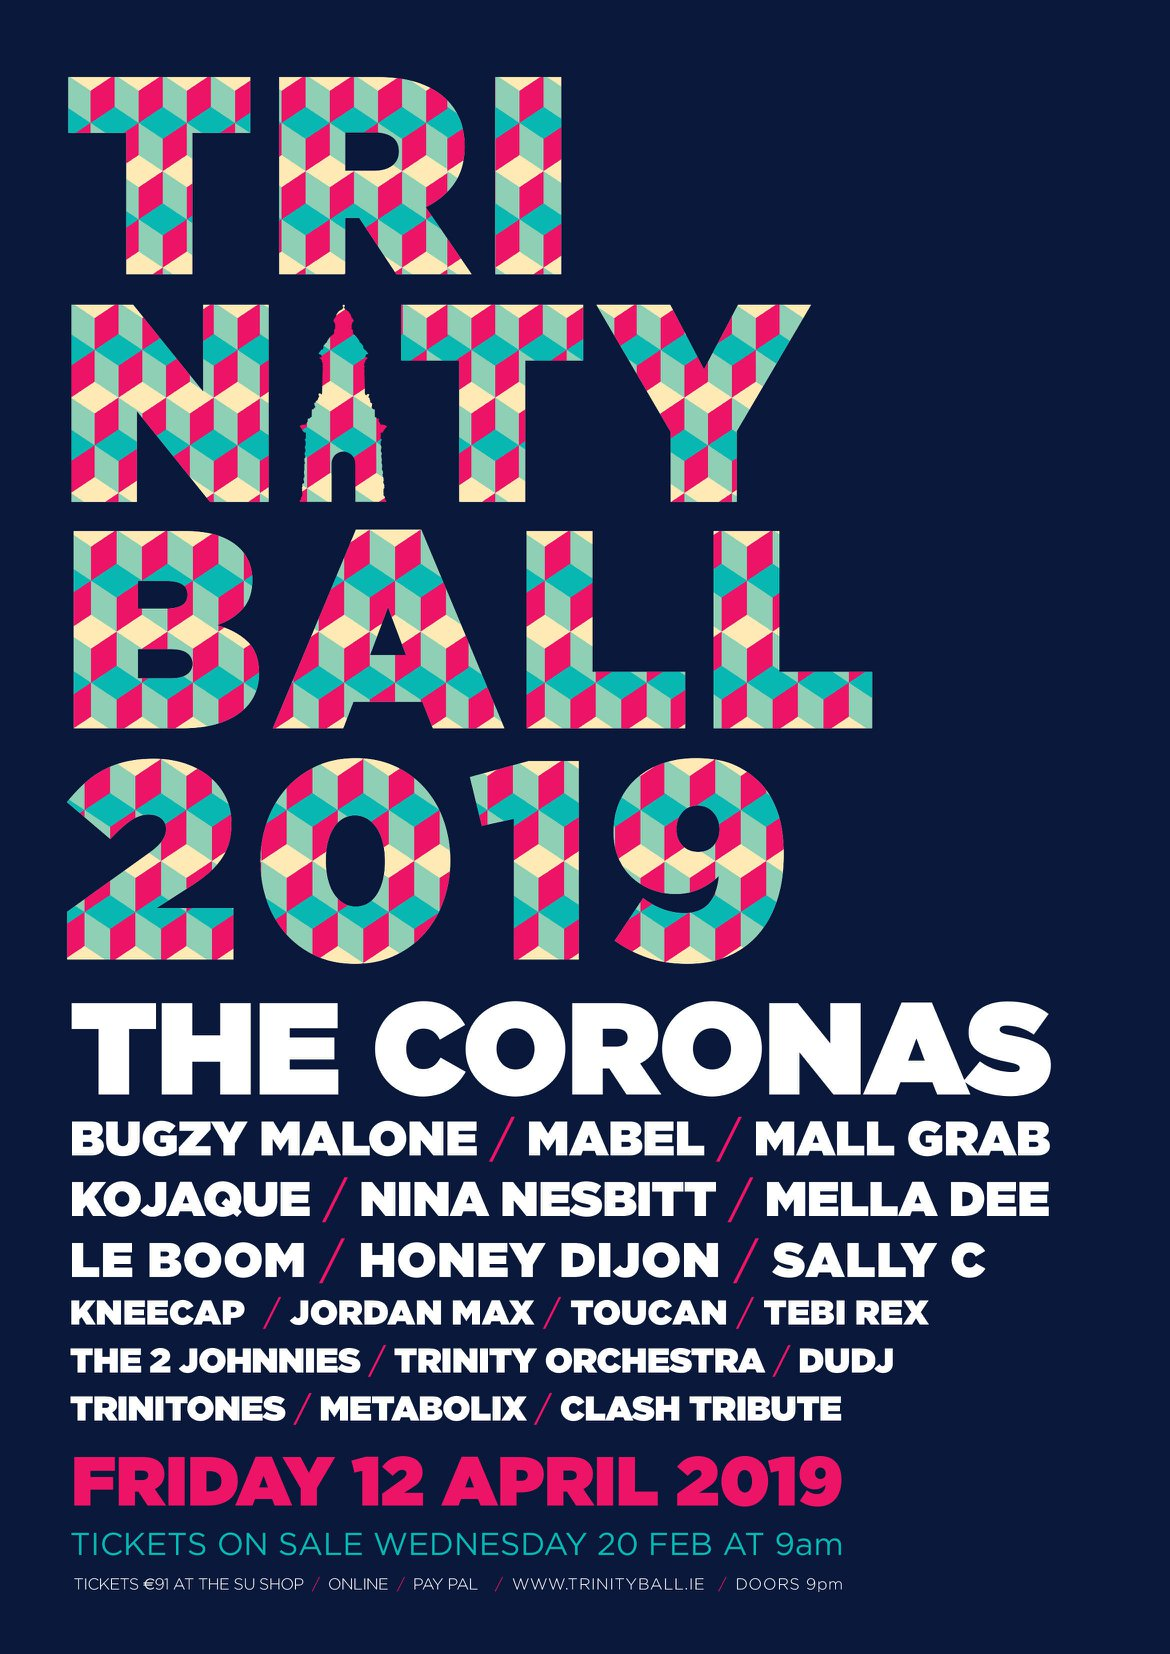 Trinity Ball 2019 Line Up Announced Including Mabel Tebi